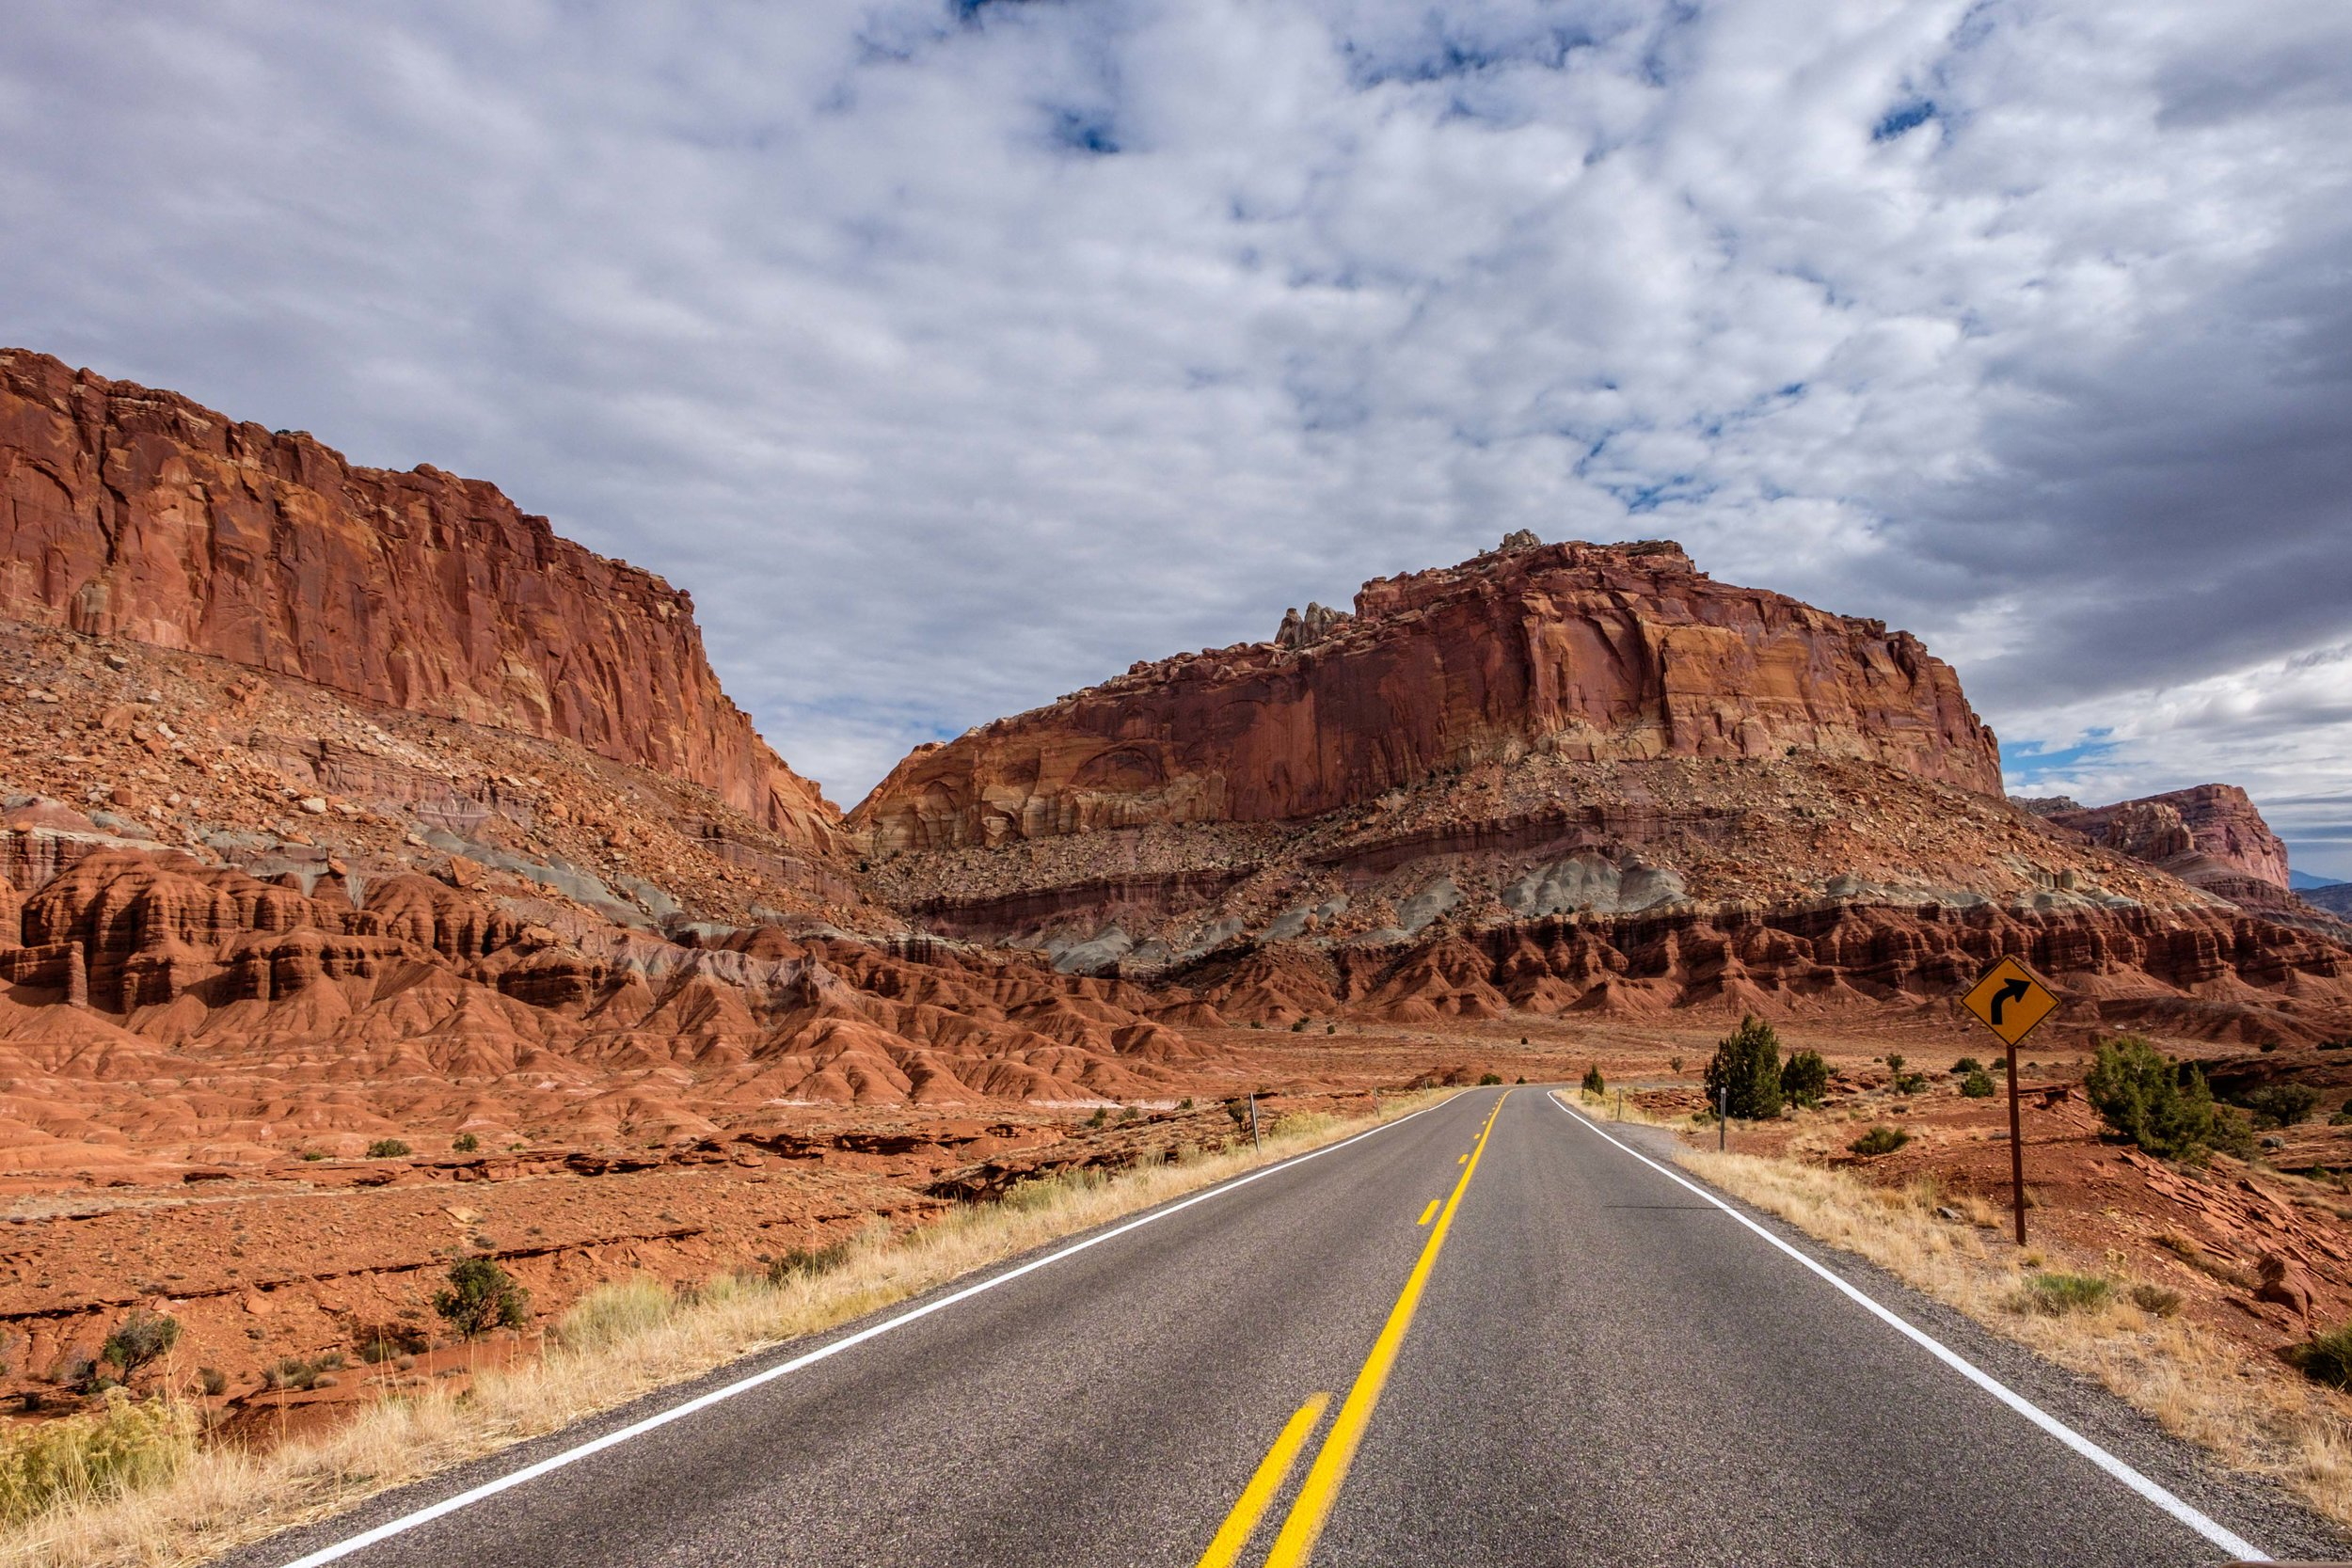 Driving towards a formation known as 'the Castle,'located near the visitor center.